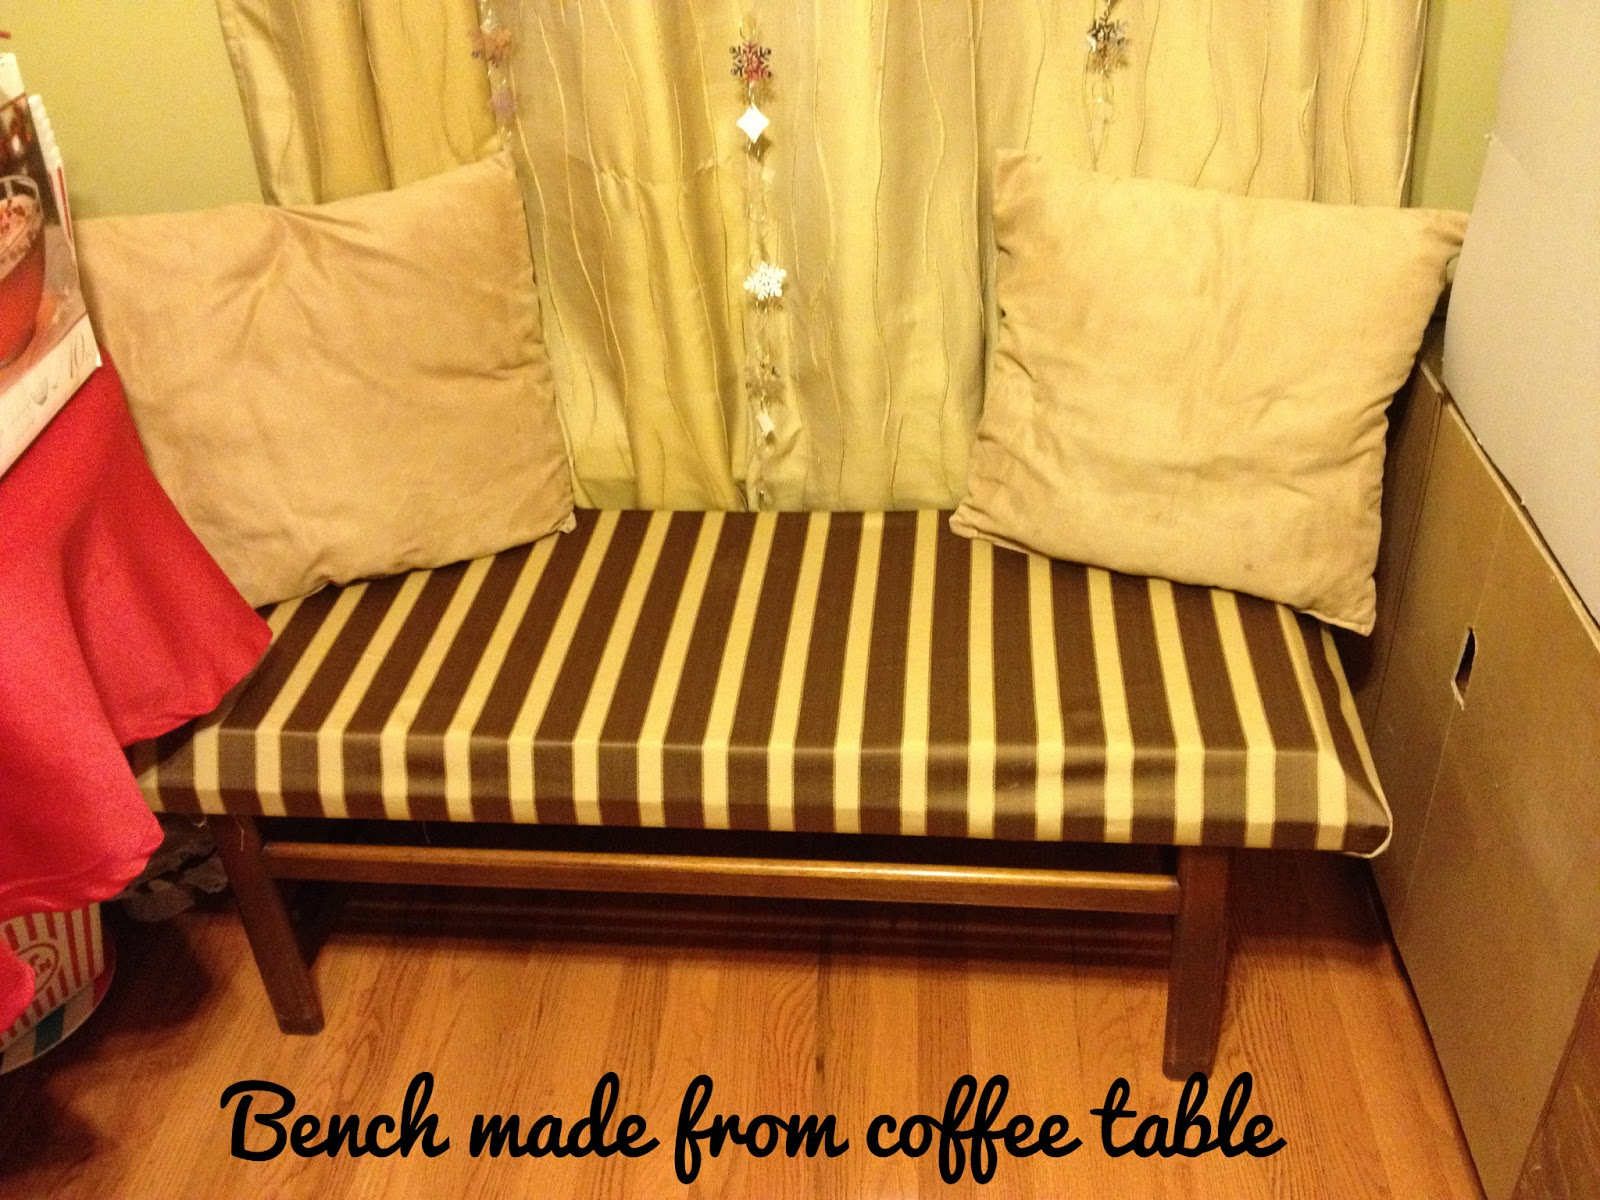 Coffee Table Into A Bench Madcap Frenzy Graphic Design Diy Papercrafts And Everything In